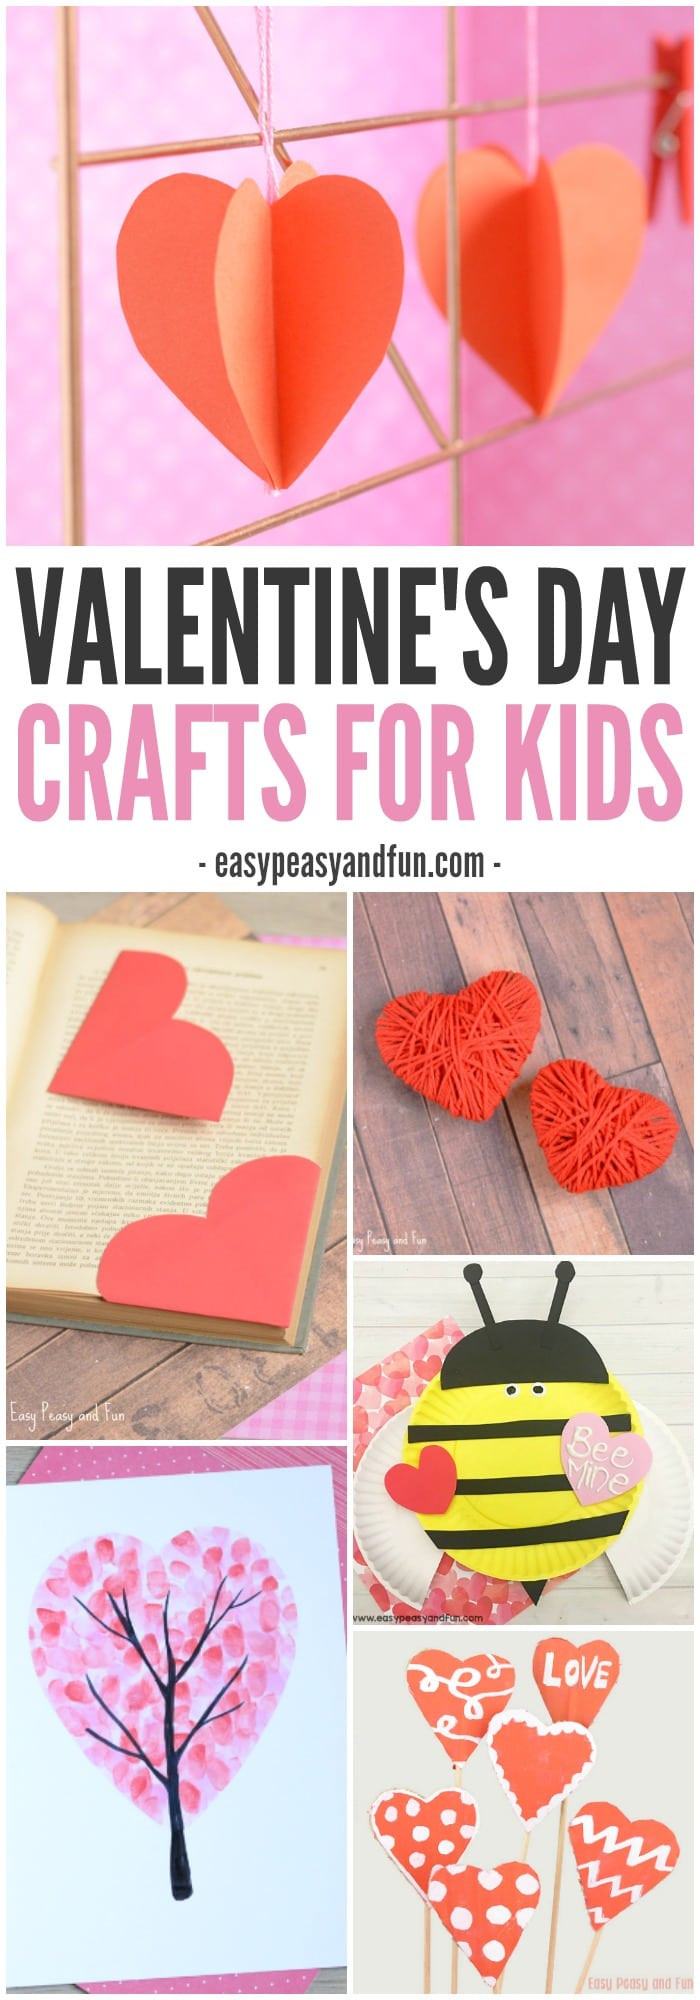 Best ideas about Valentine'S Day Craft Ideas For Preschoolers . Save or Pin Valentines Day Crafts for Kids Art and Craft Ideas for Now.